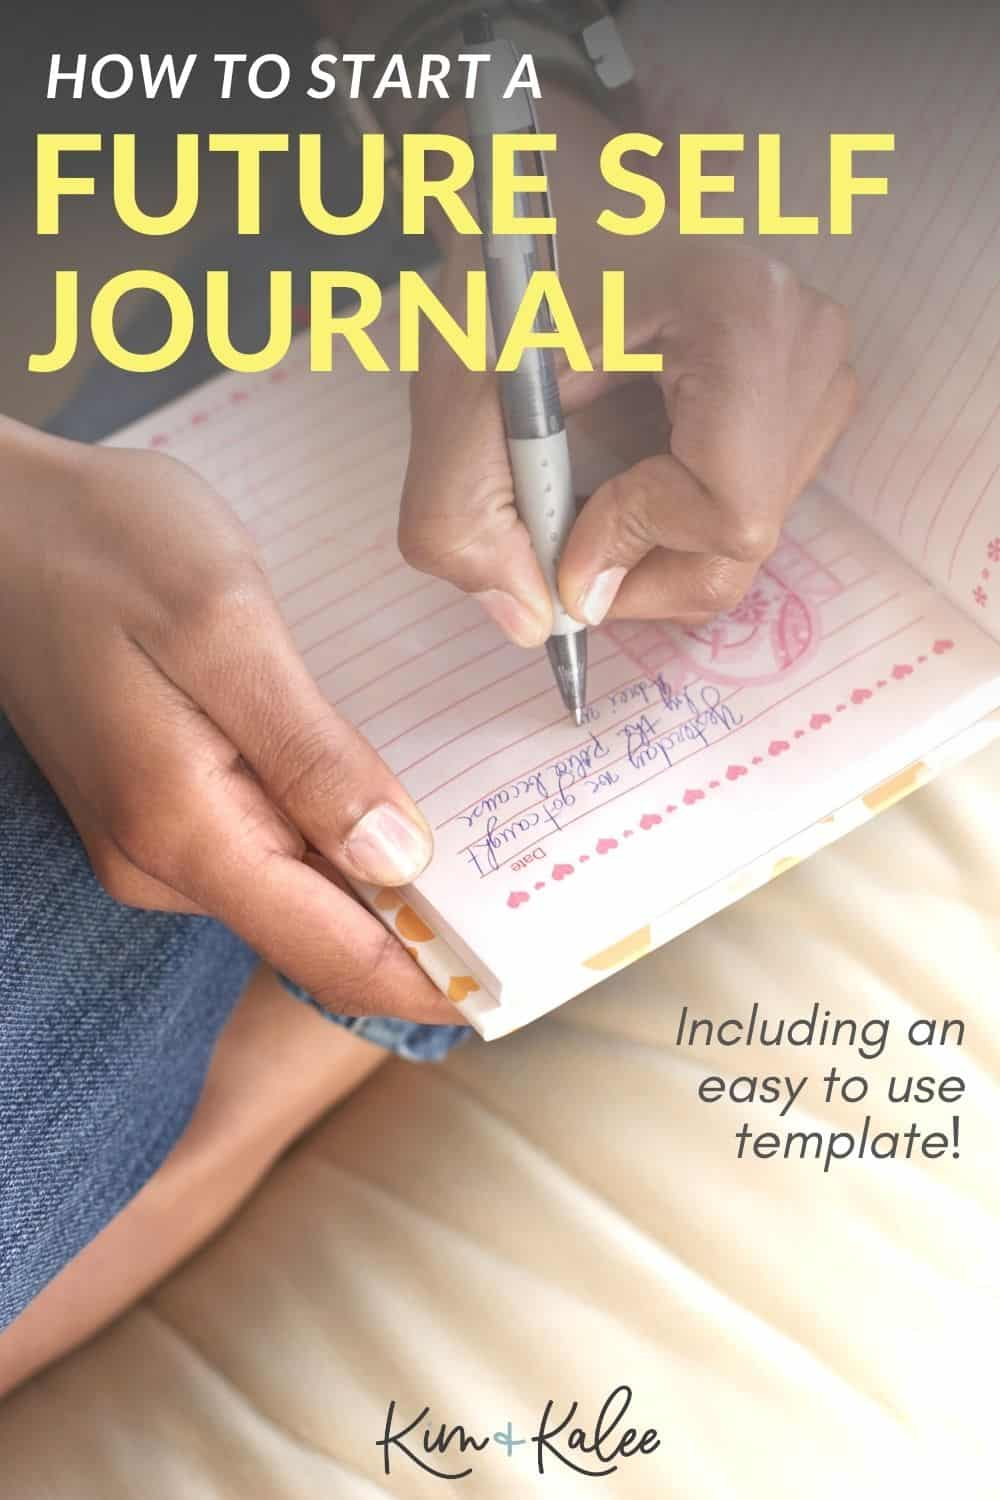 photo of woman writing in a journal